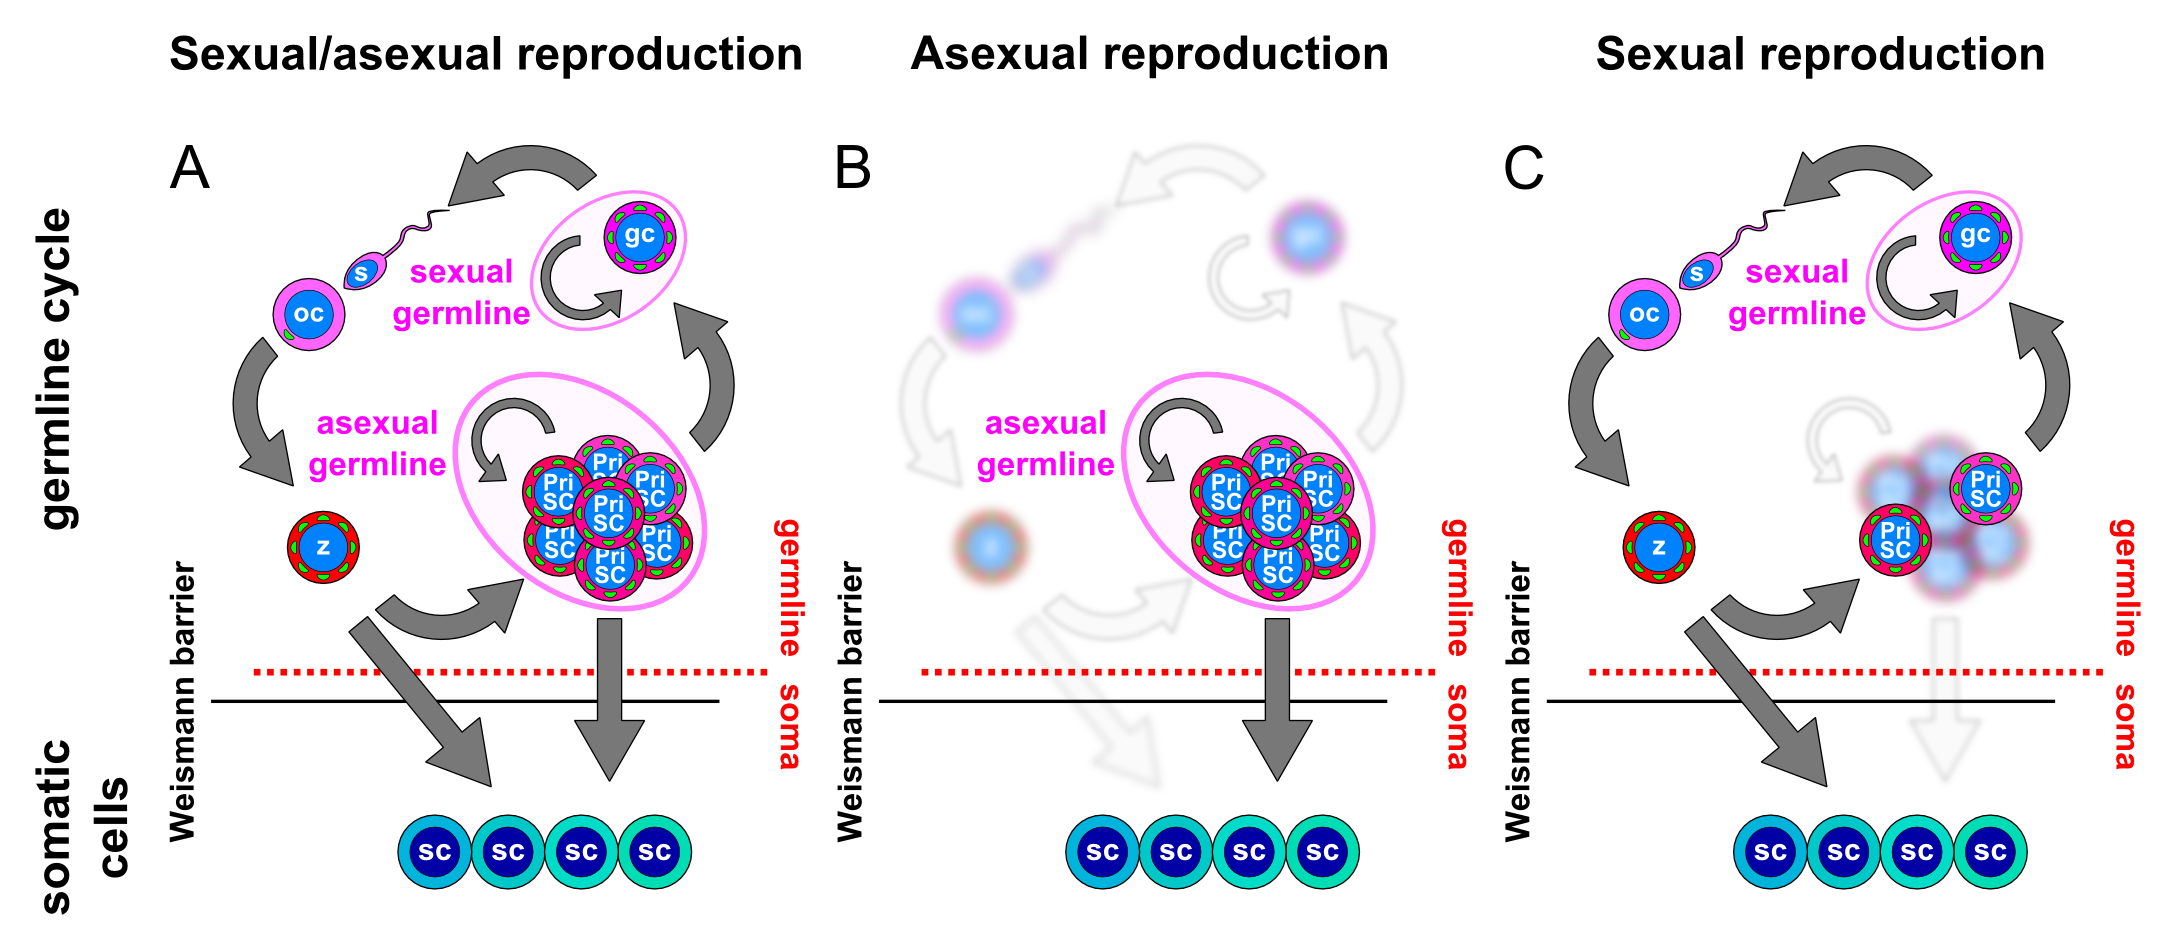 animal asexual reproduction - photo #46